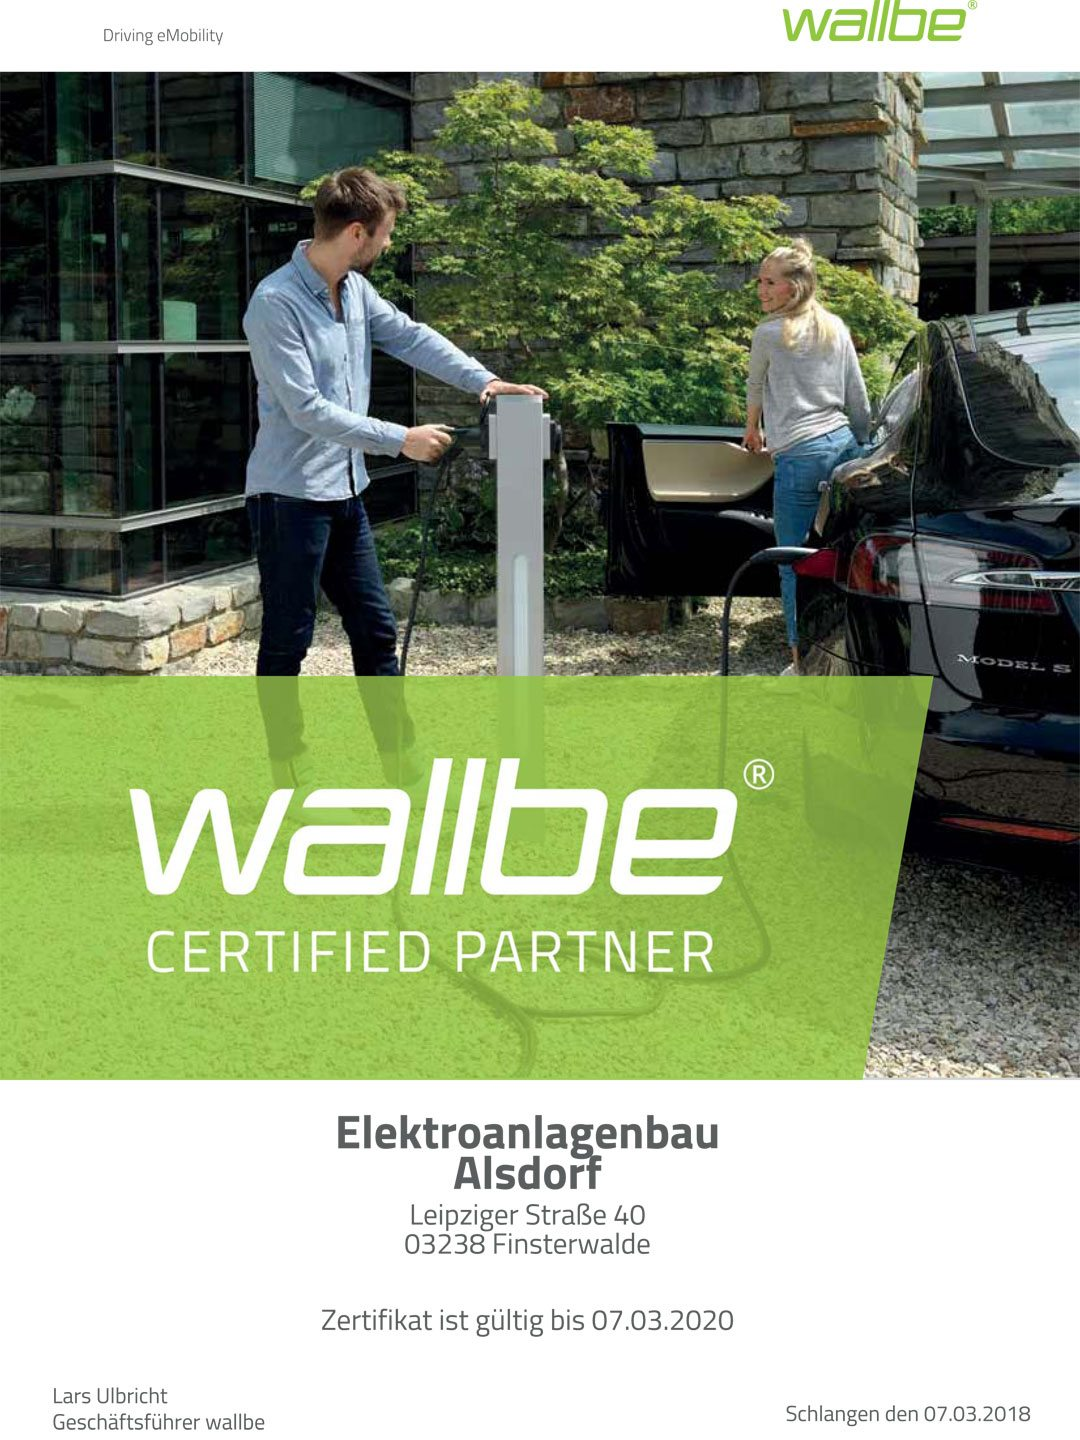 wallbe® eDriving eMobility